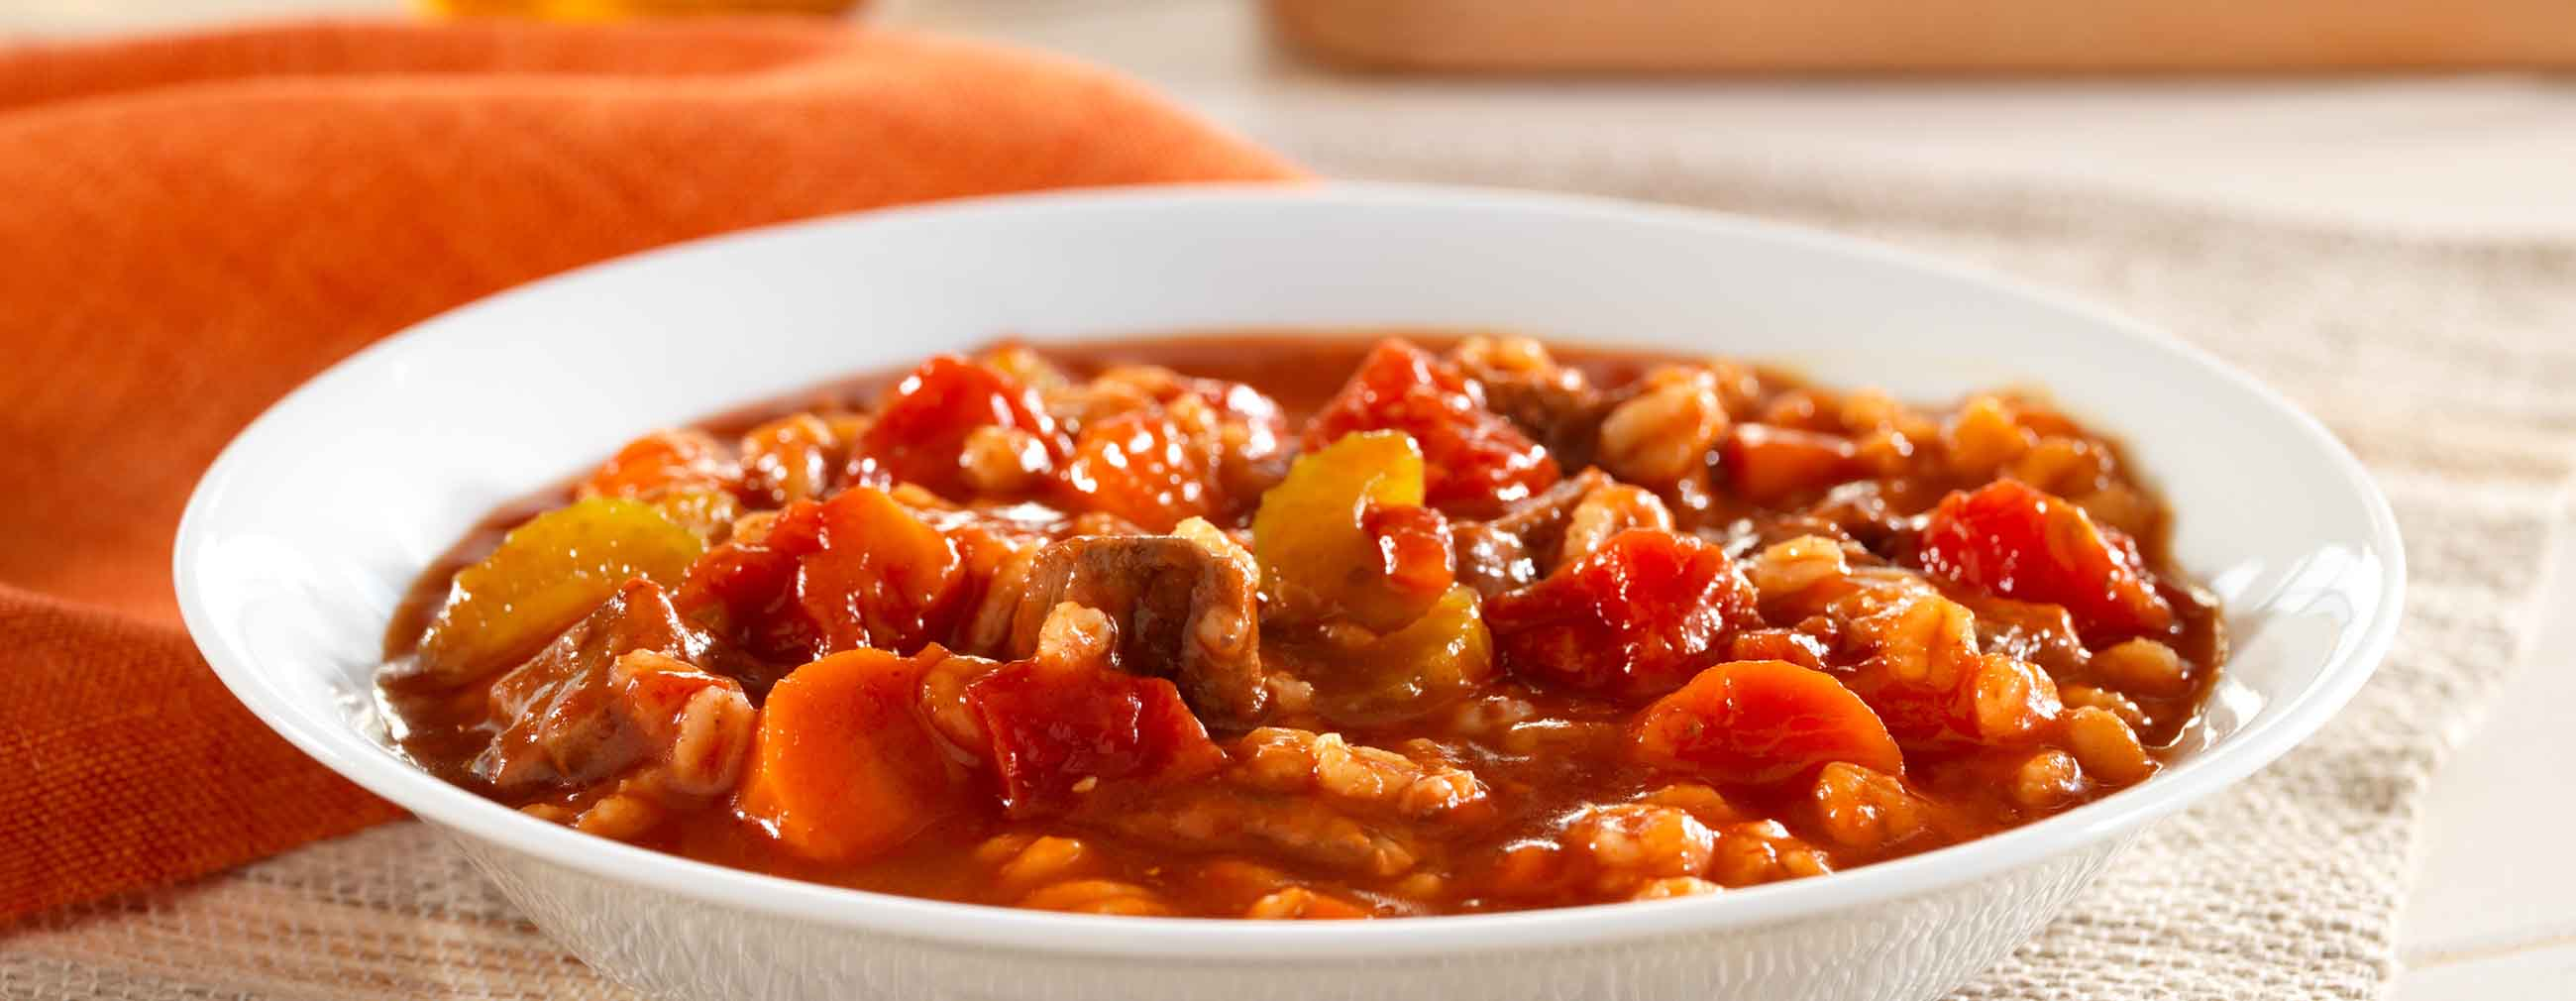 Hunt's® Beef and Barley Stew